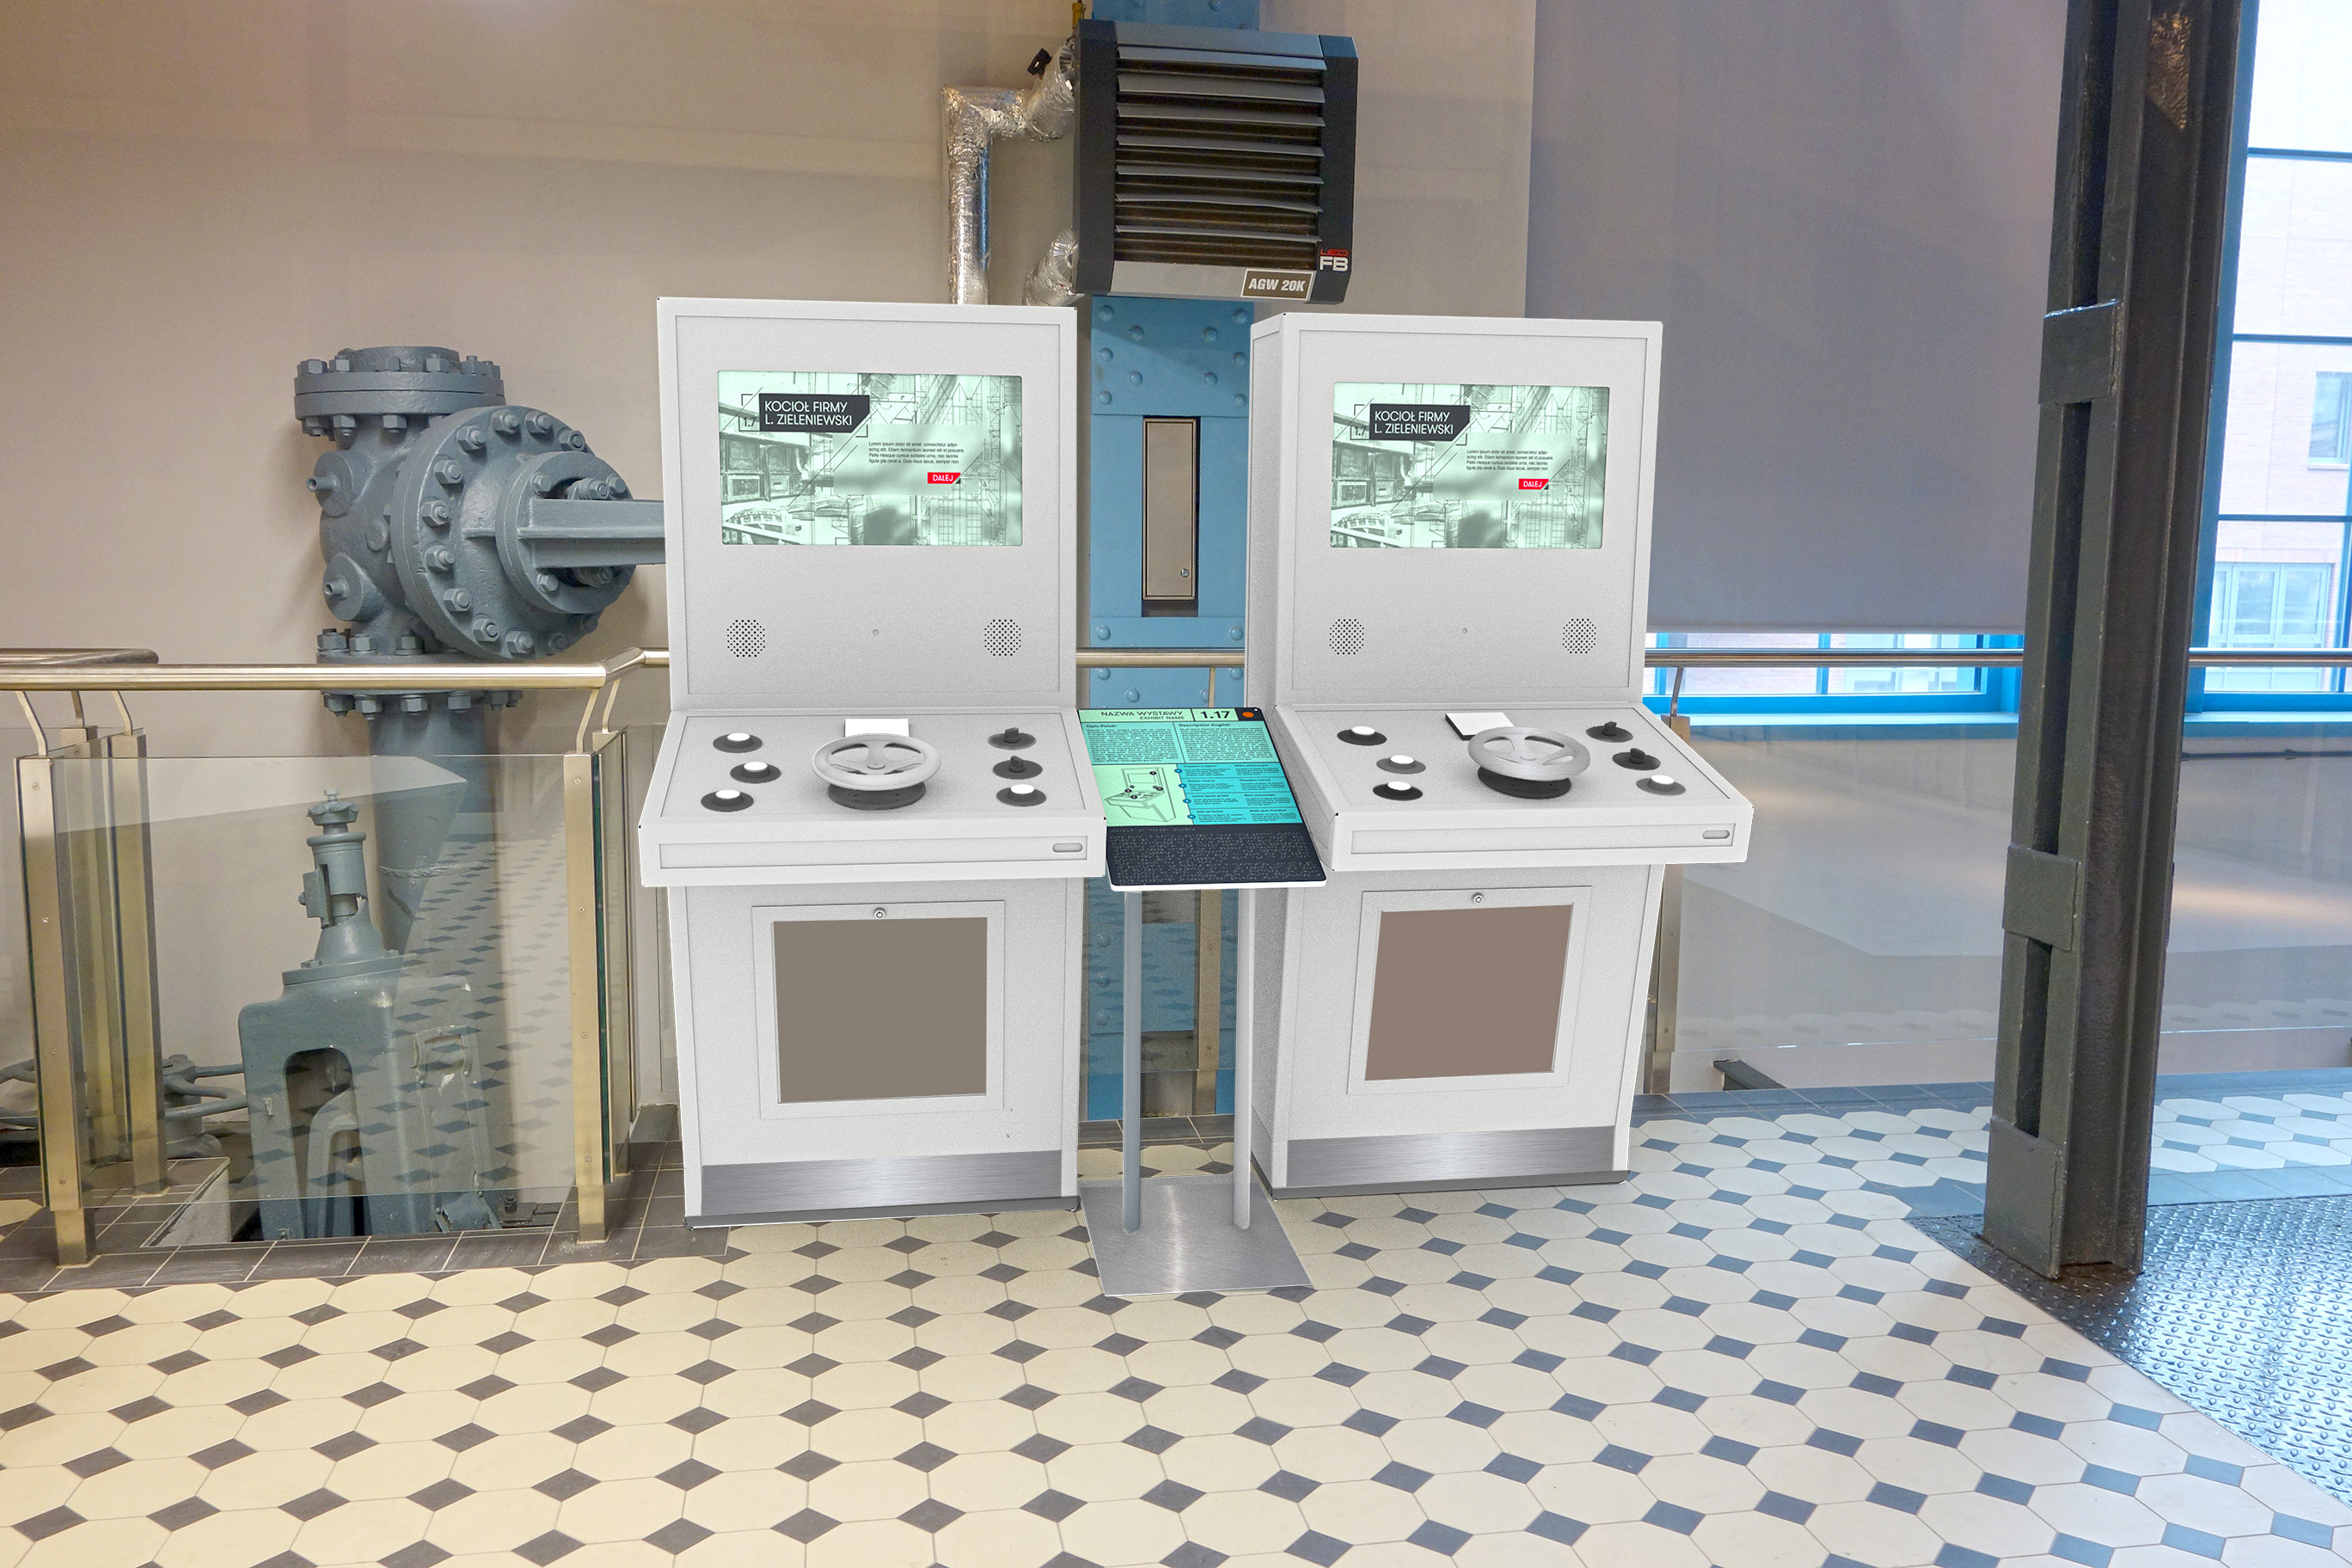 Visualisation of equipment in Science Center